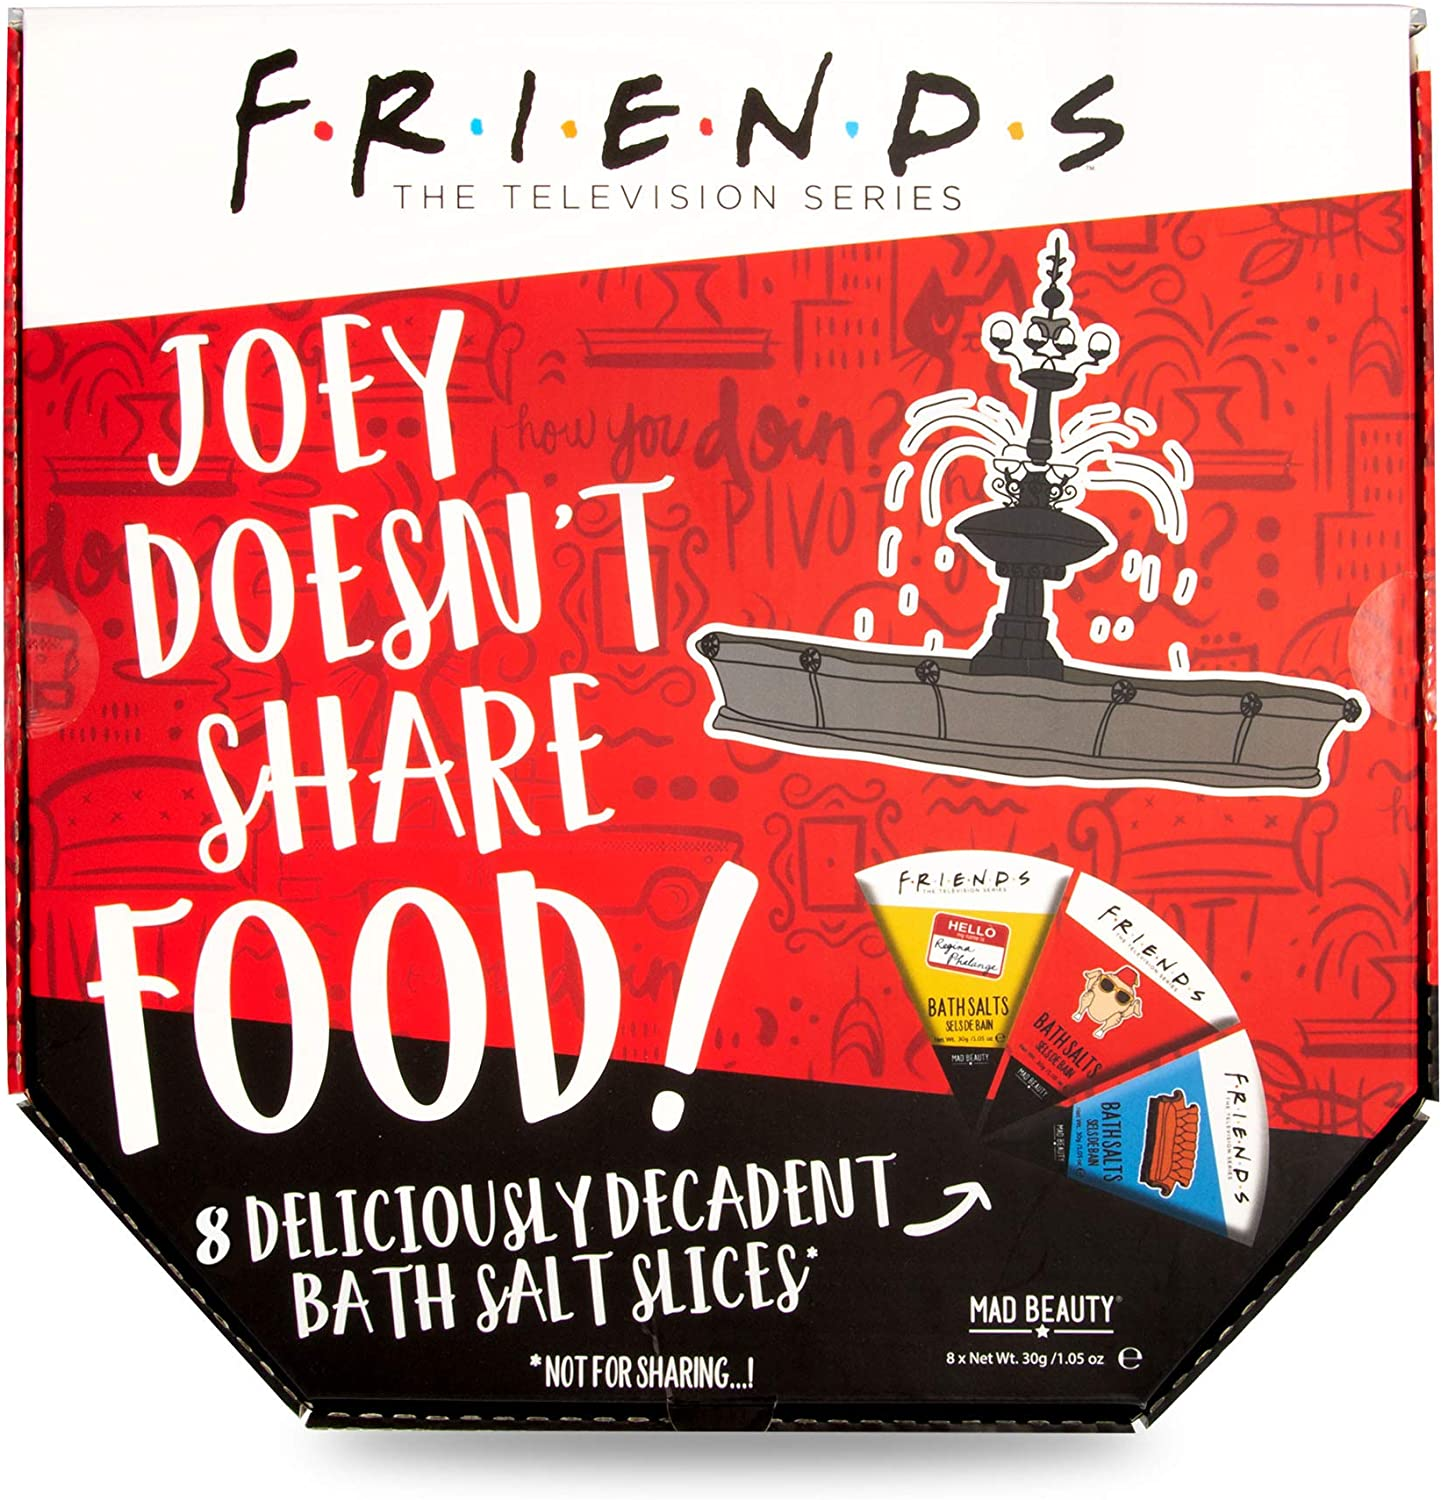 MAD BEAUTY Friends TV Show Joey Doesn't Share Food 8 Slices of Bath Salts Set in Funny Pizza Box Packaging to Share or Not Share, Relaxing and Moisturizing Coconut, Peony, Vanilla Tea, and More